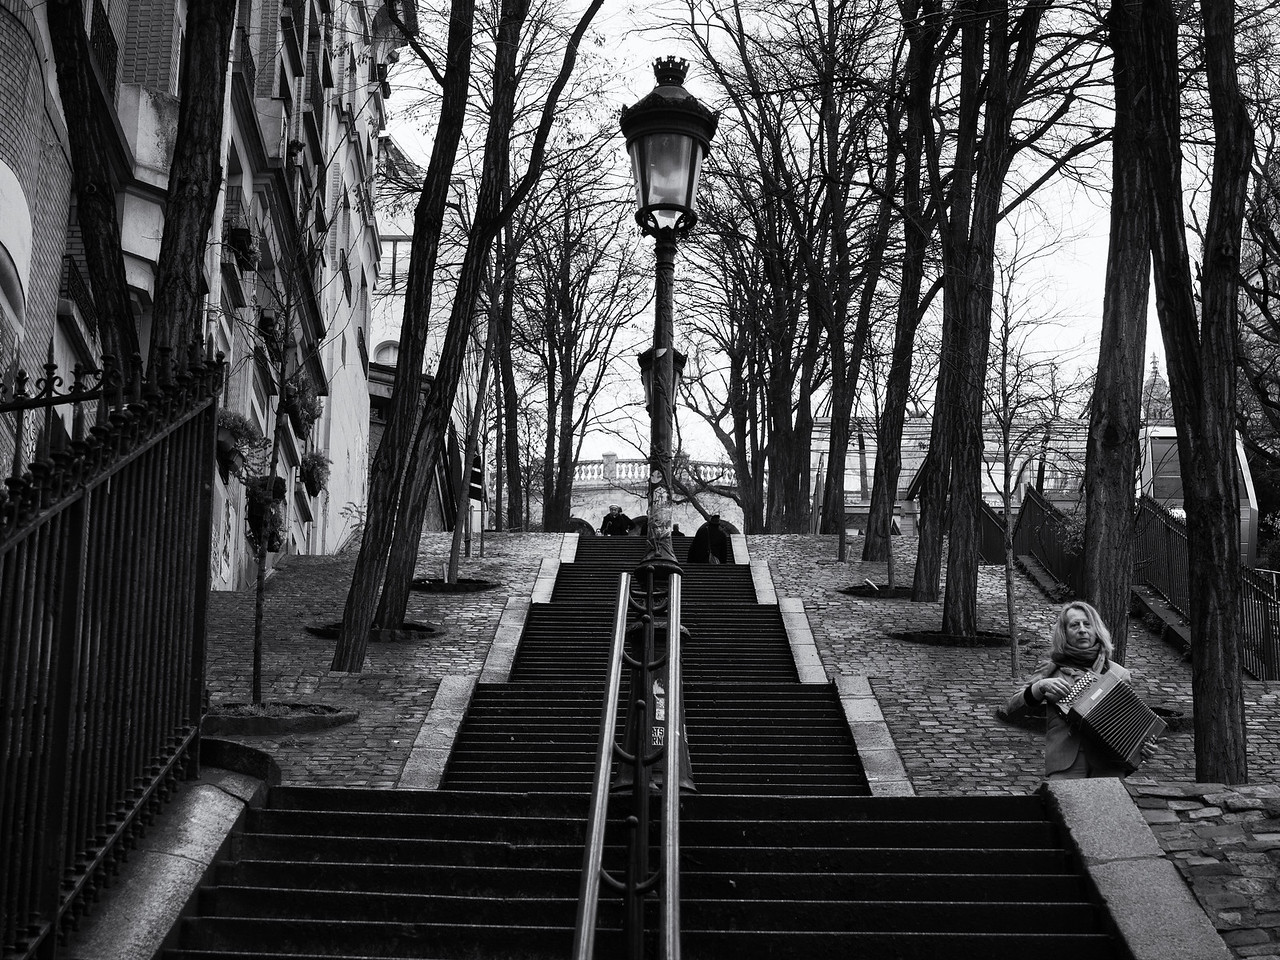 Accordion player at the bottom of steps leading up to Sacre Coeur.